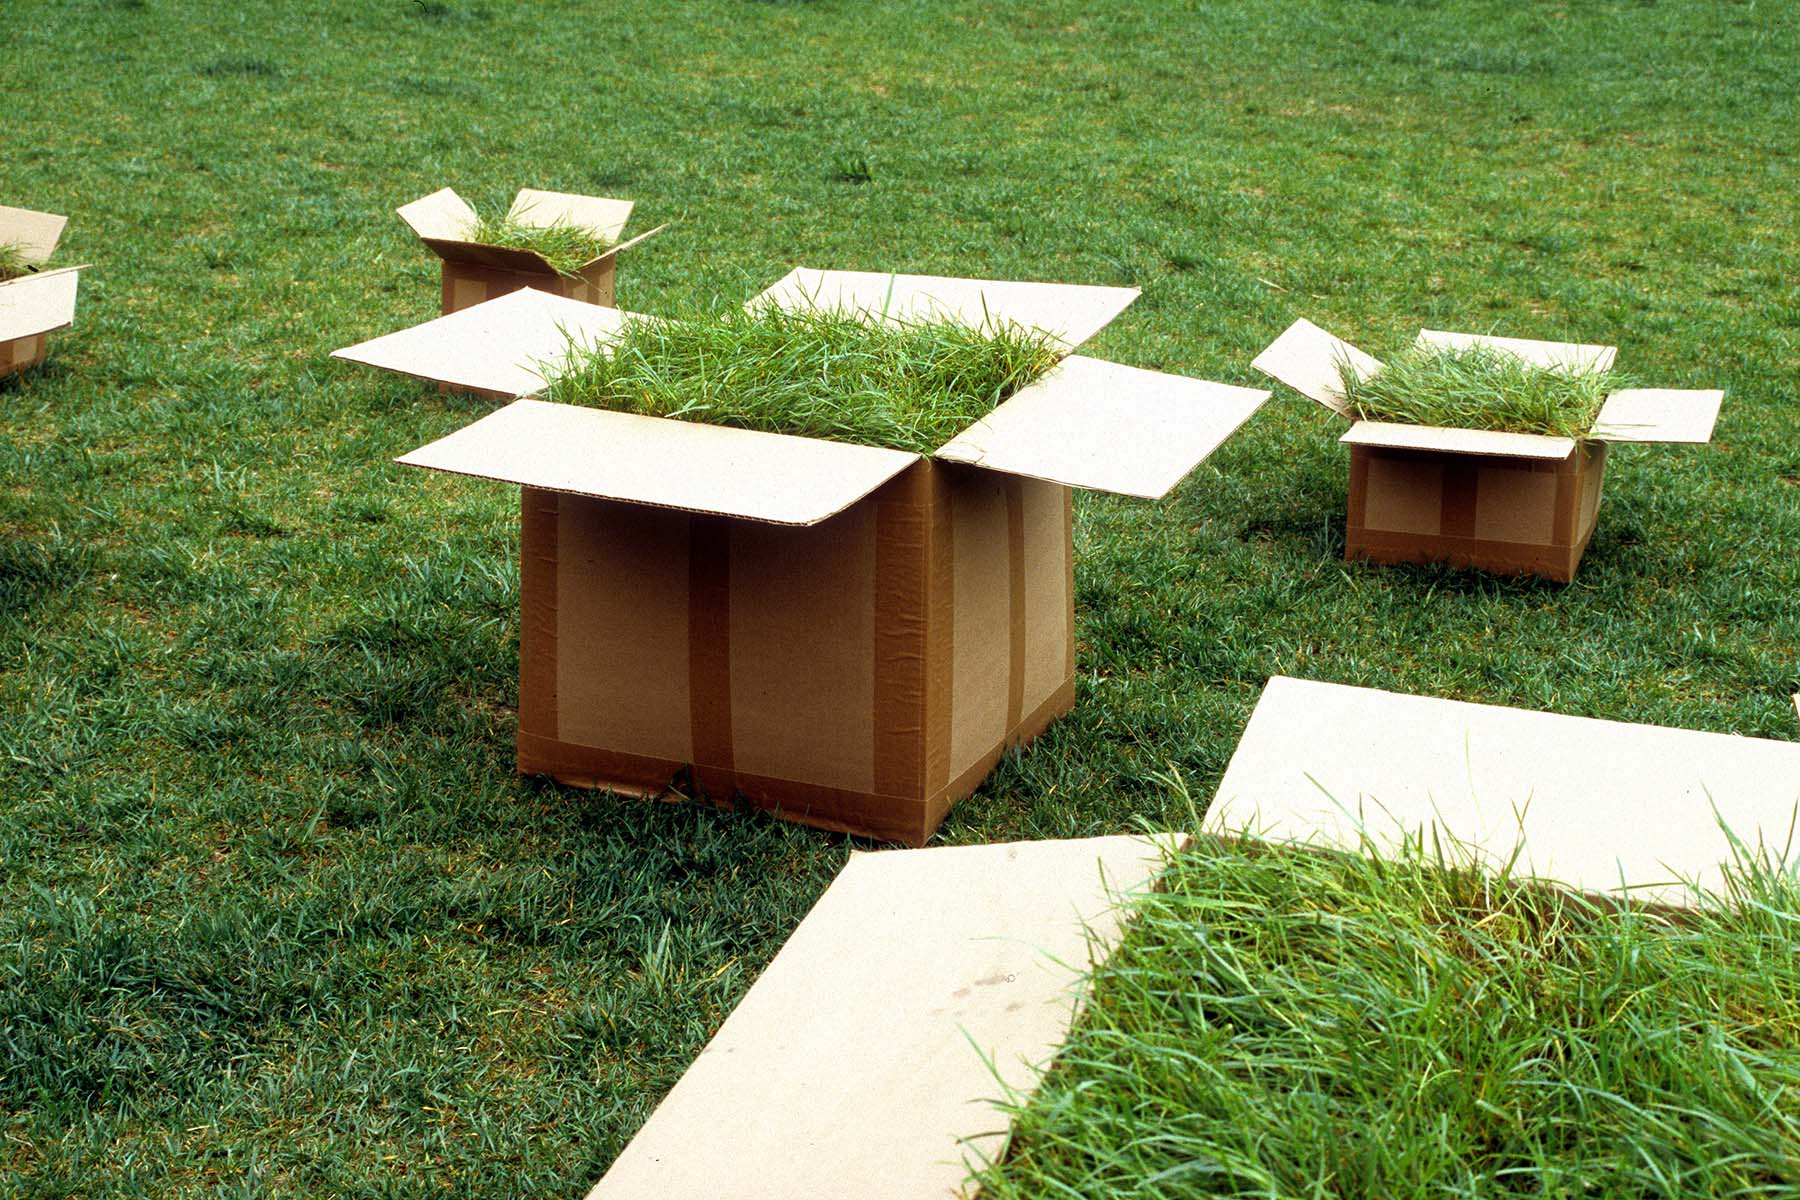 Detail of boxes